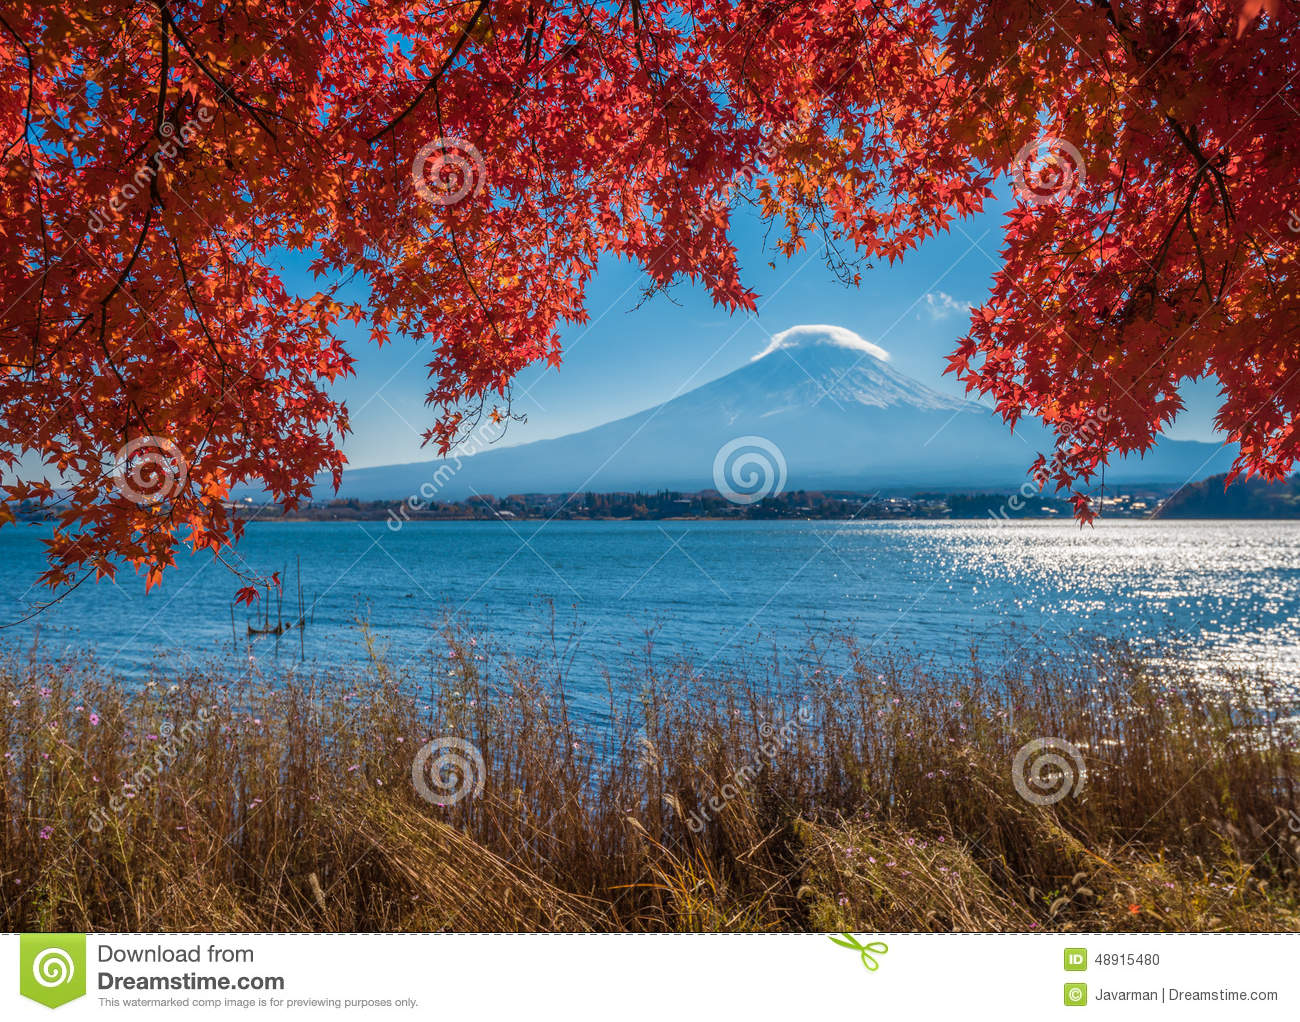 Windows Wallpaper Fall Mount Fuji And Autumn Maple Leaves Kawaguchiko Lake